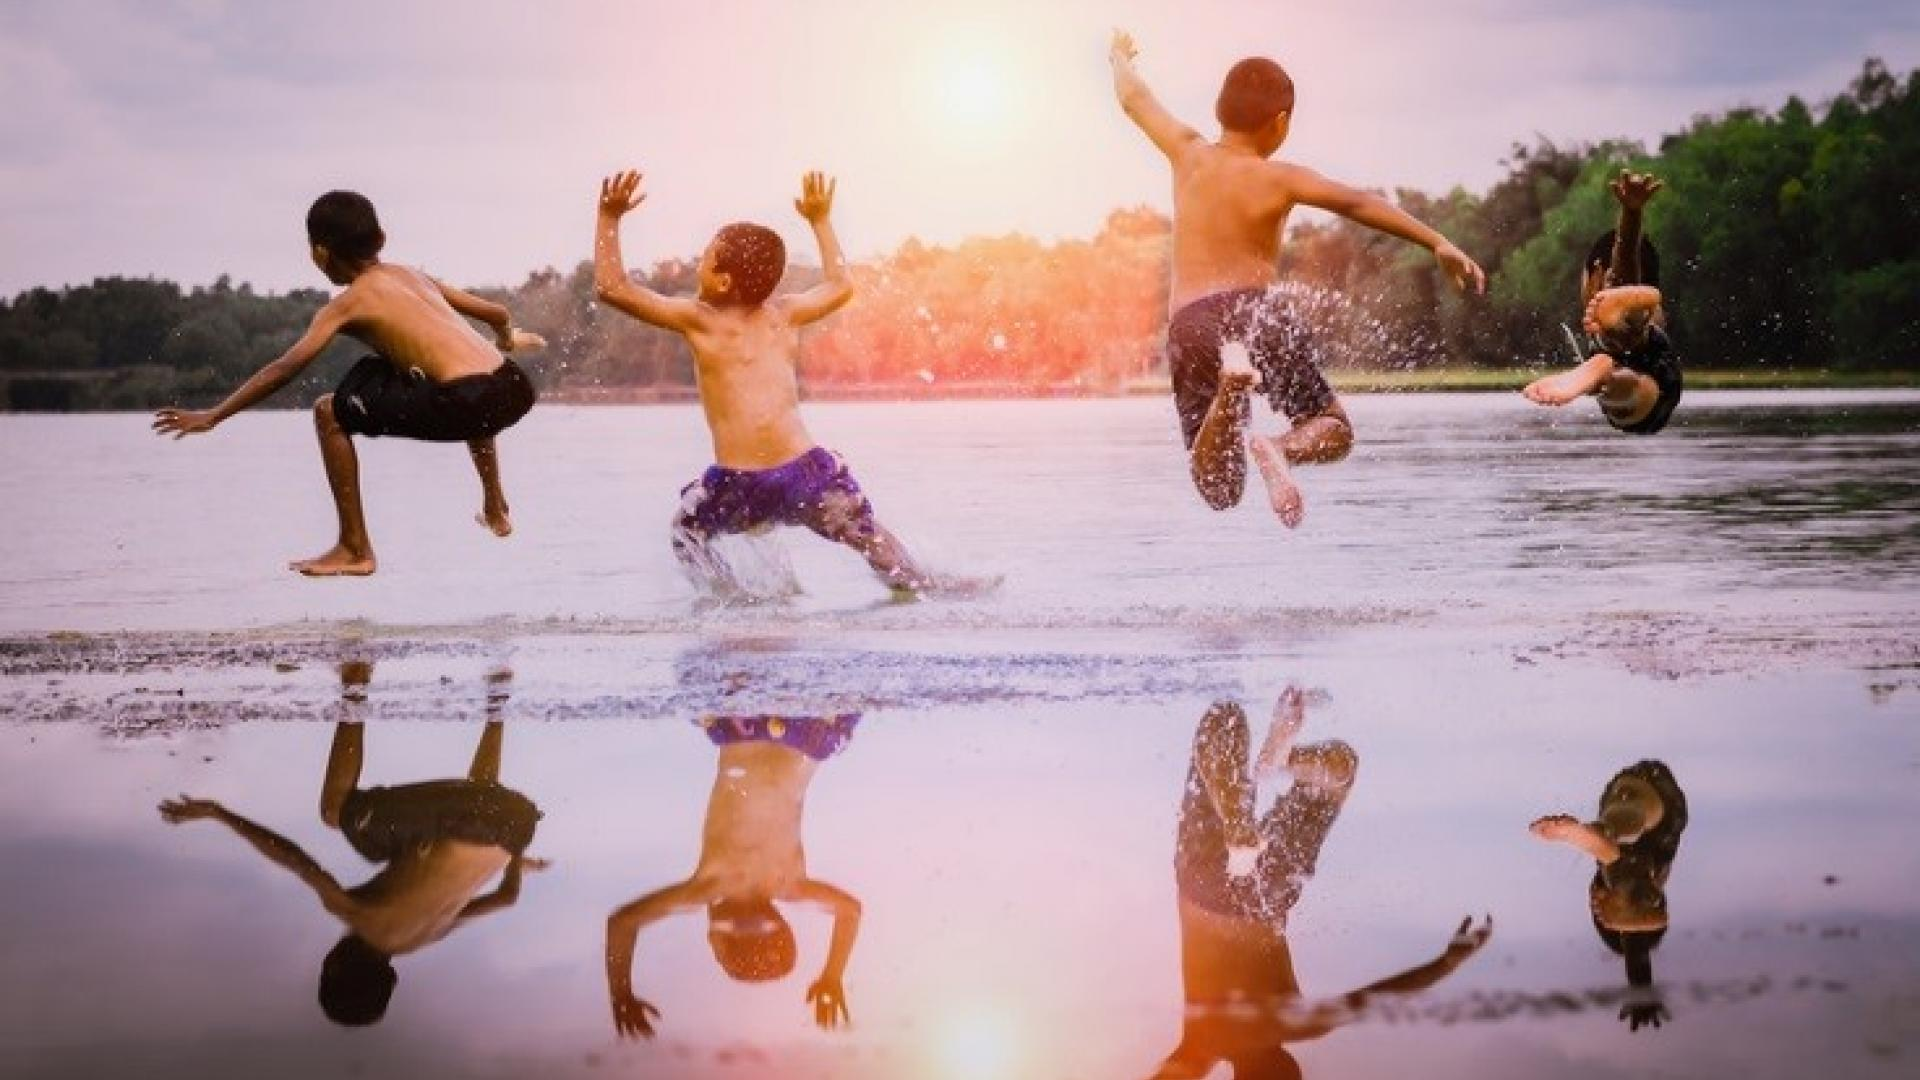 children enjoying water shutterstock